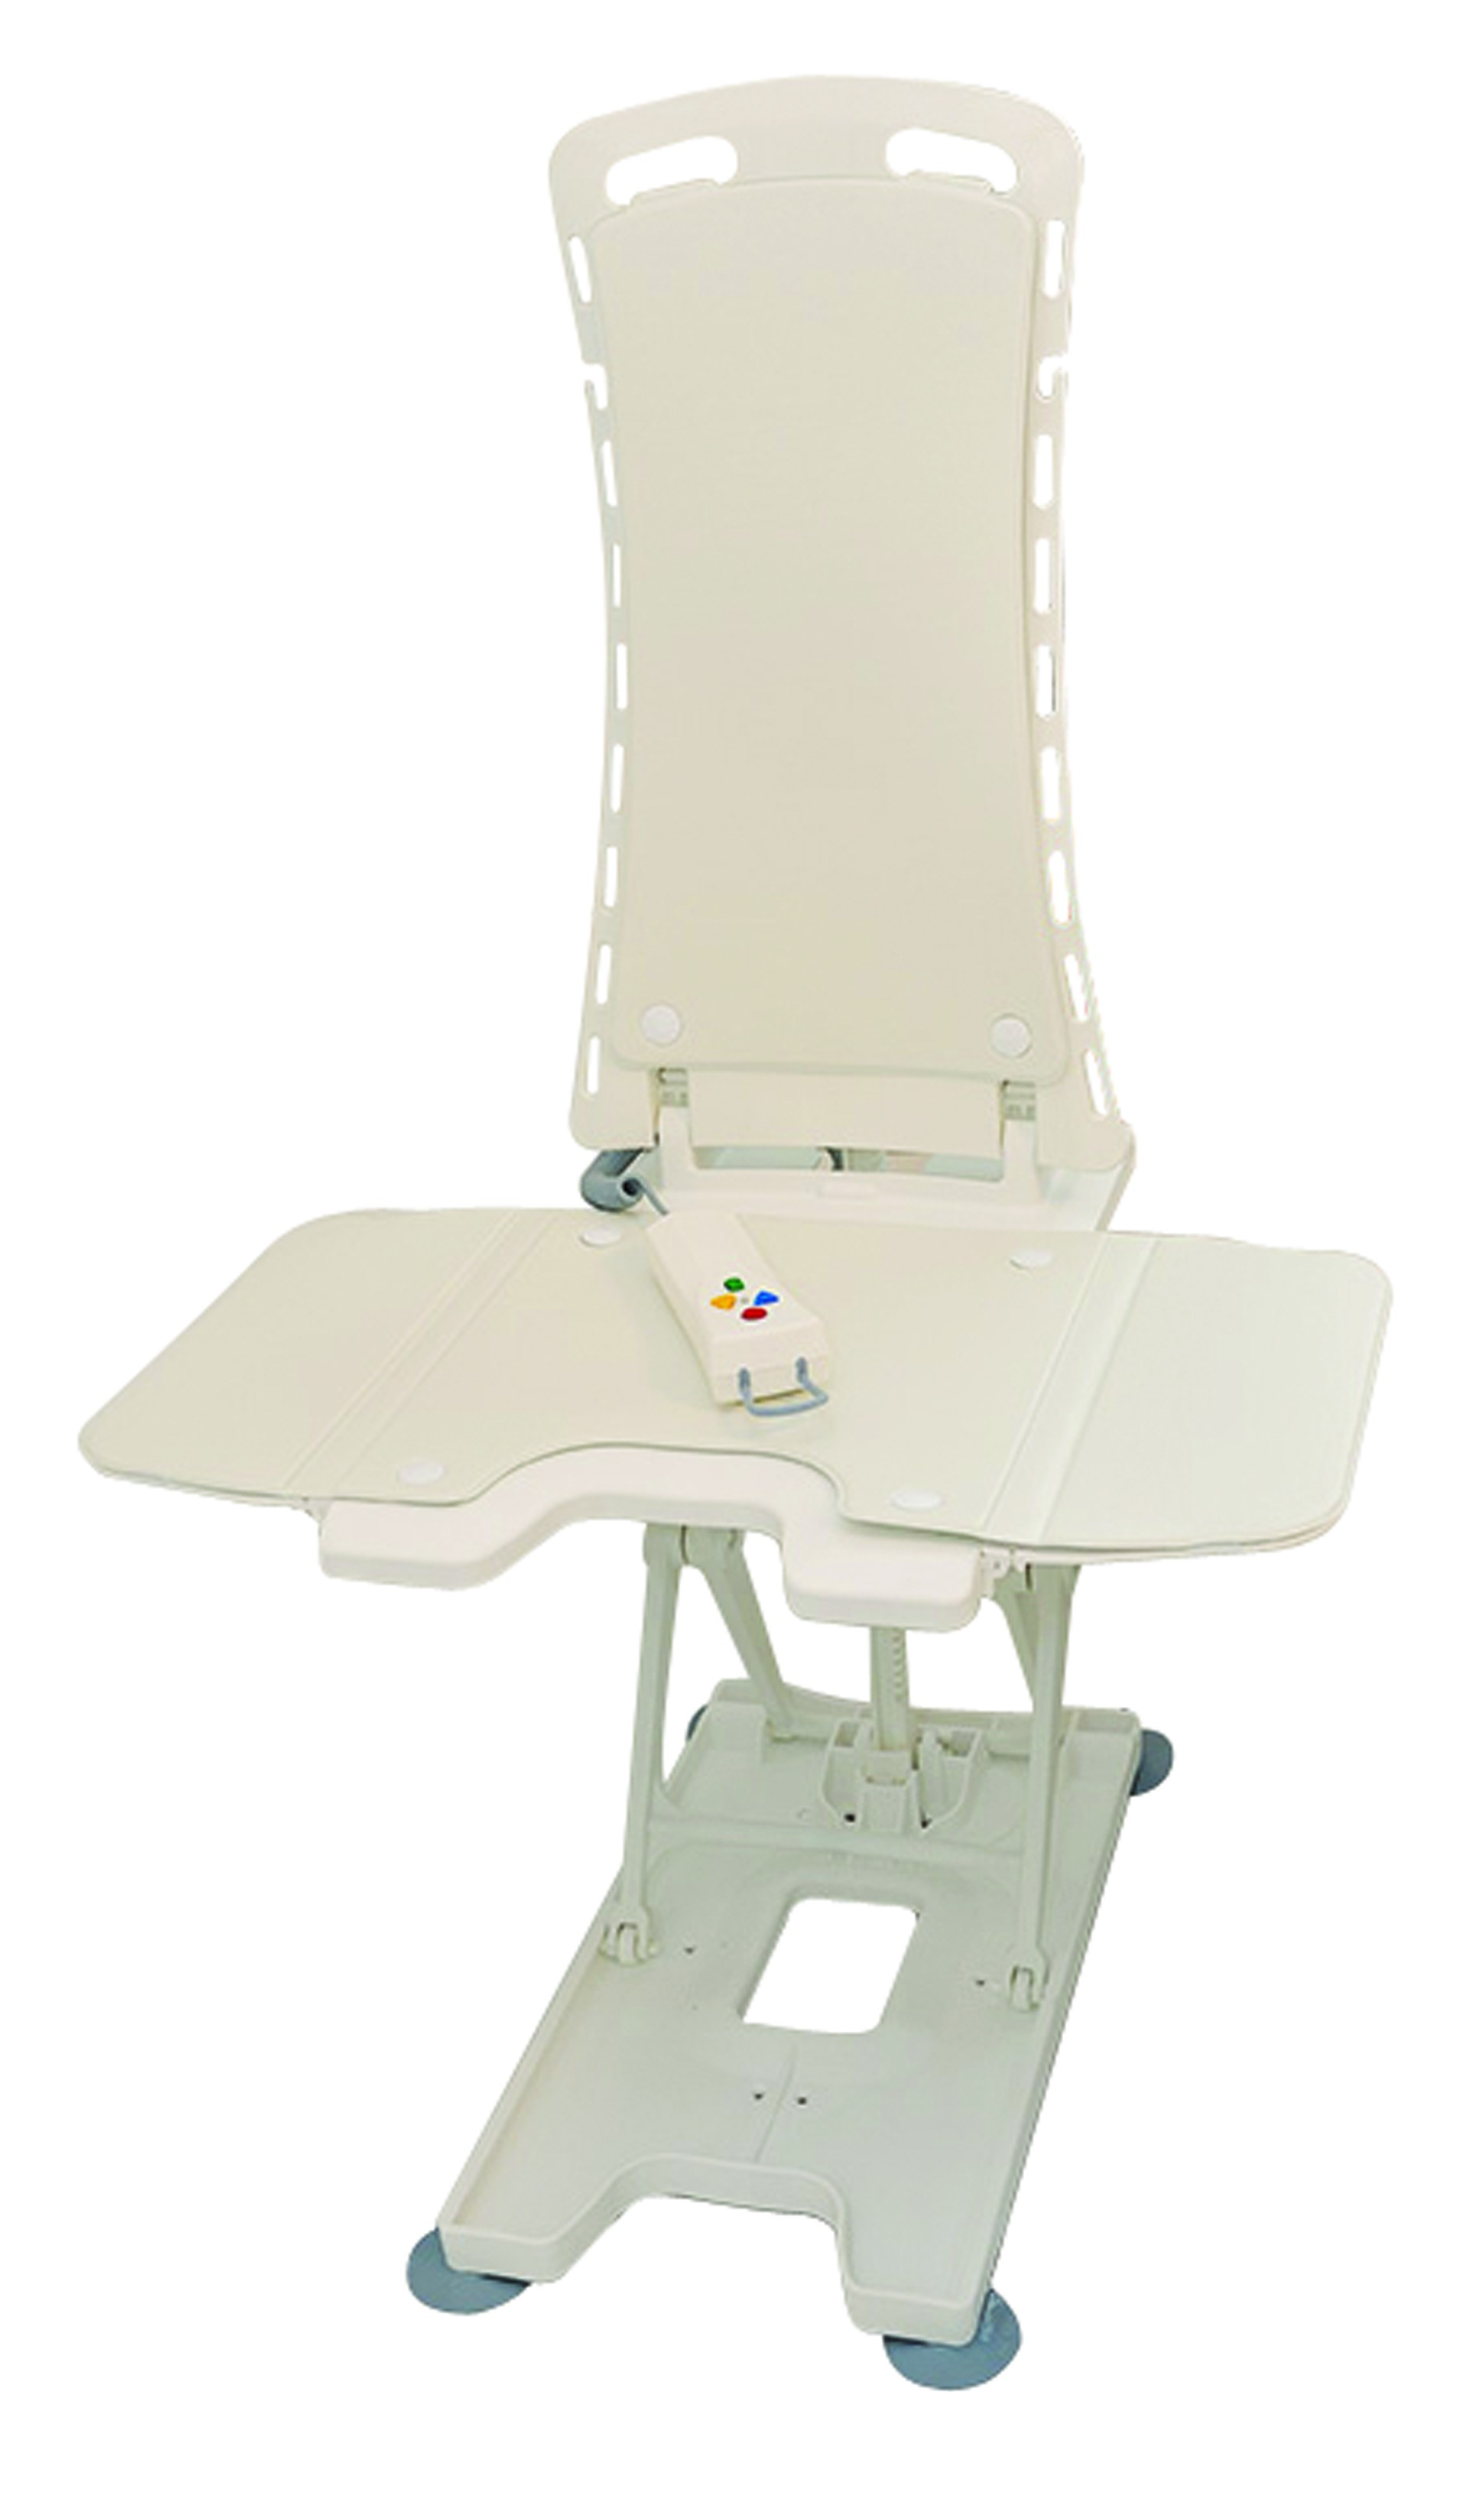 Bath Chair Lift White Bellavita Auto Bath Tub Chair Seat Lift